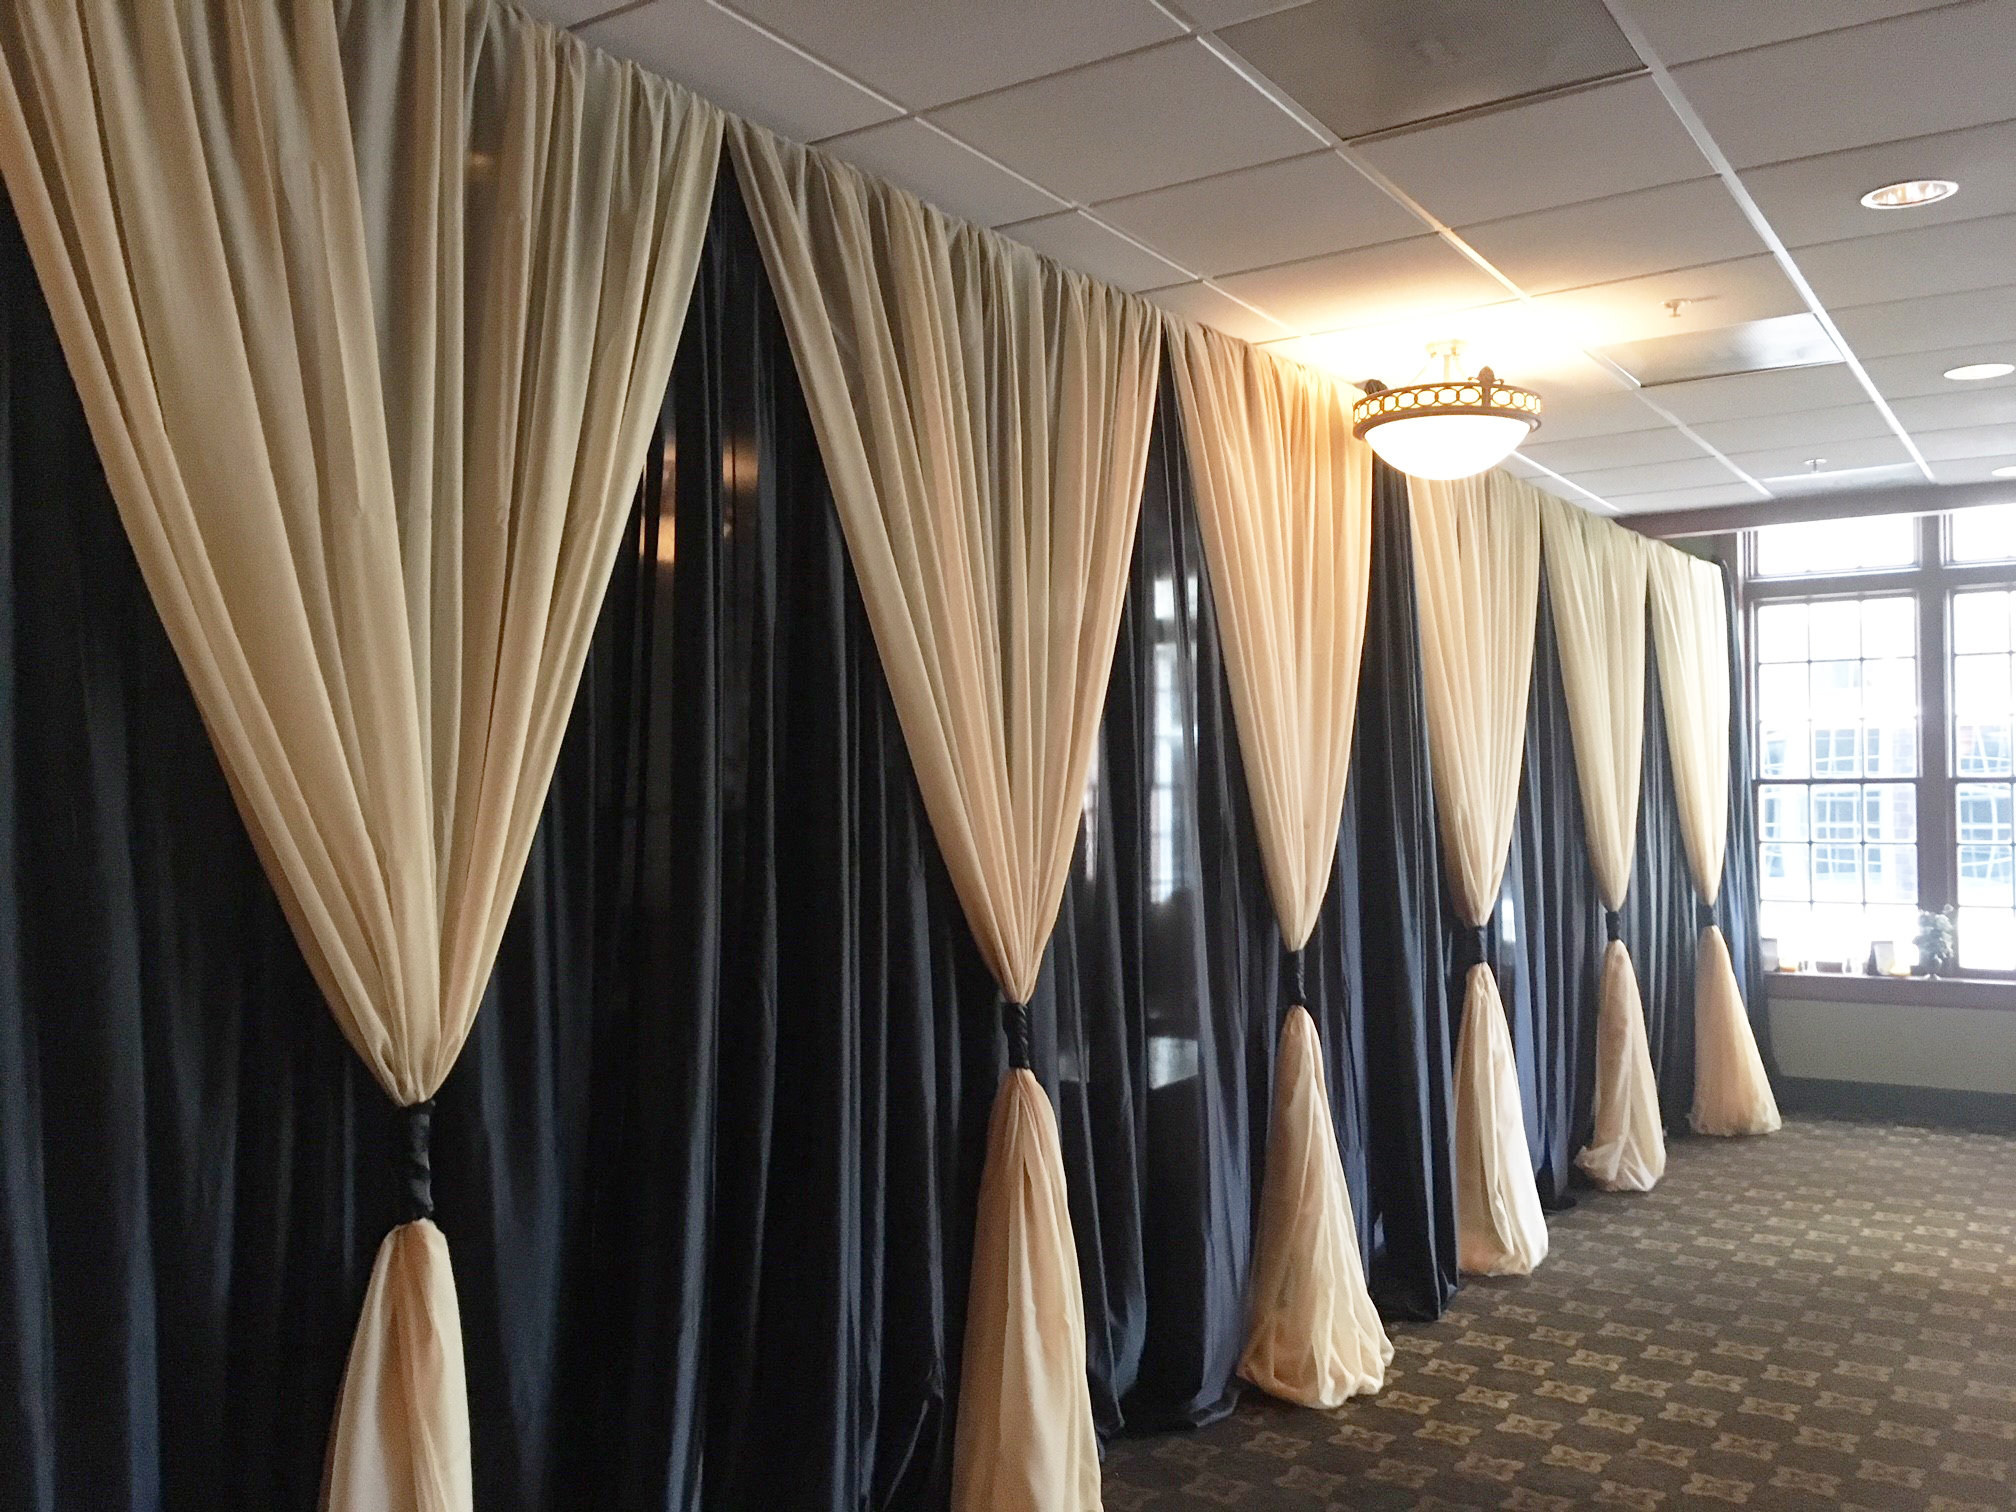 DIY Black Sateen Wall Draping -12' Height - Per Foot Black Sateen Wall Draping